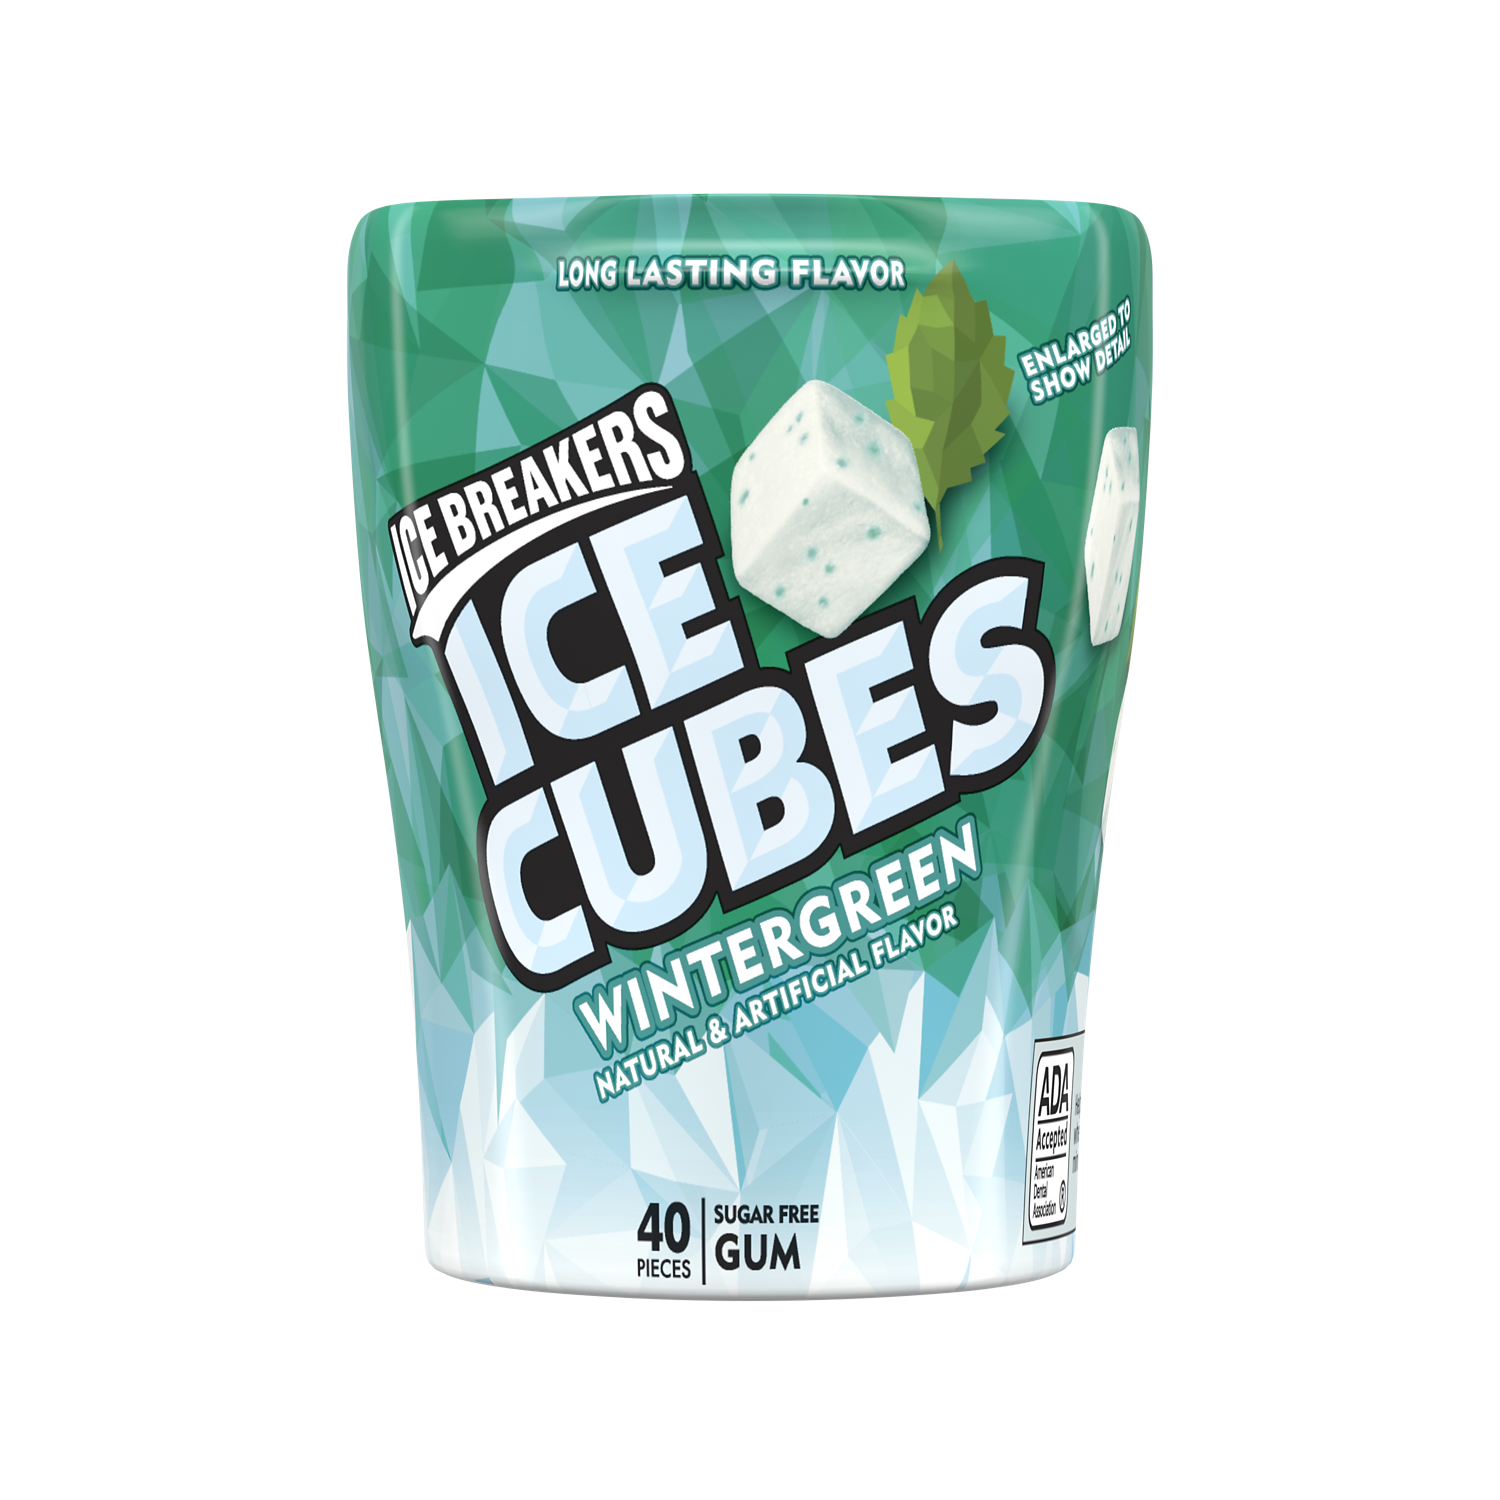 ICE BREAKERS ICE CUBES Wintergreen Sugar Free Gum, 3.24 oz bottle, 40 pieces - Front of Package